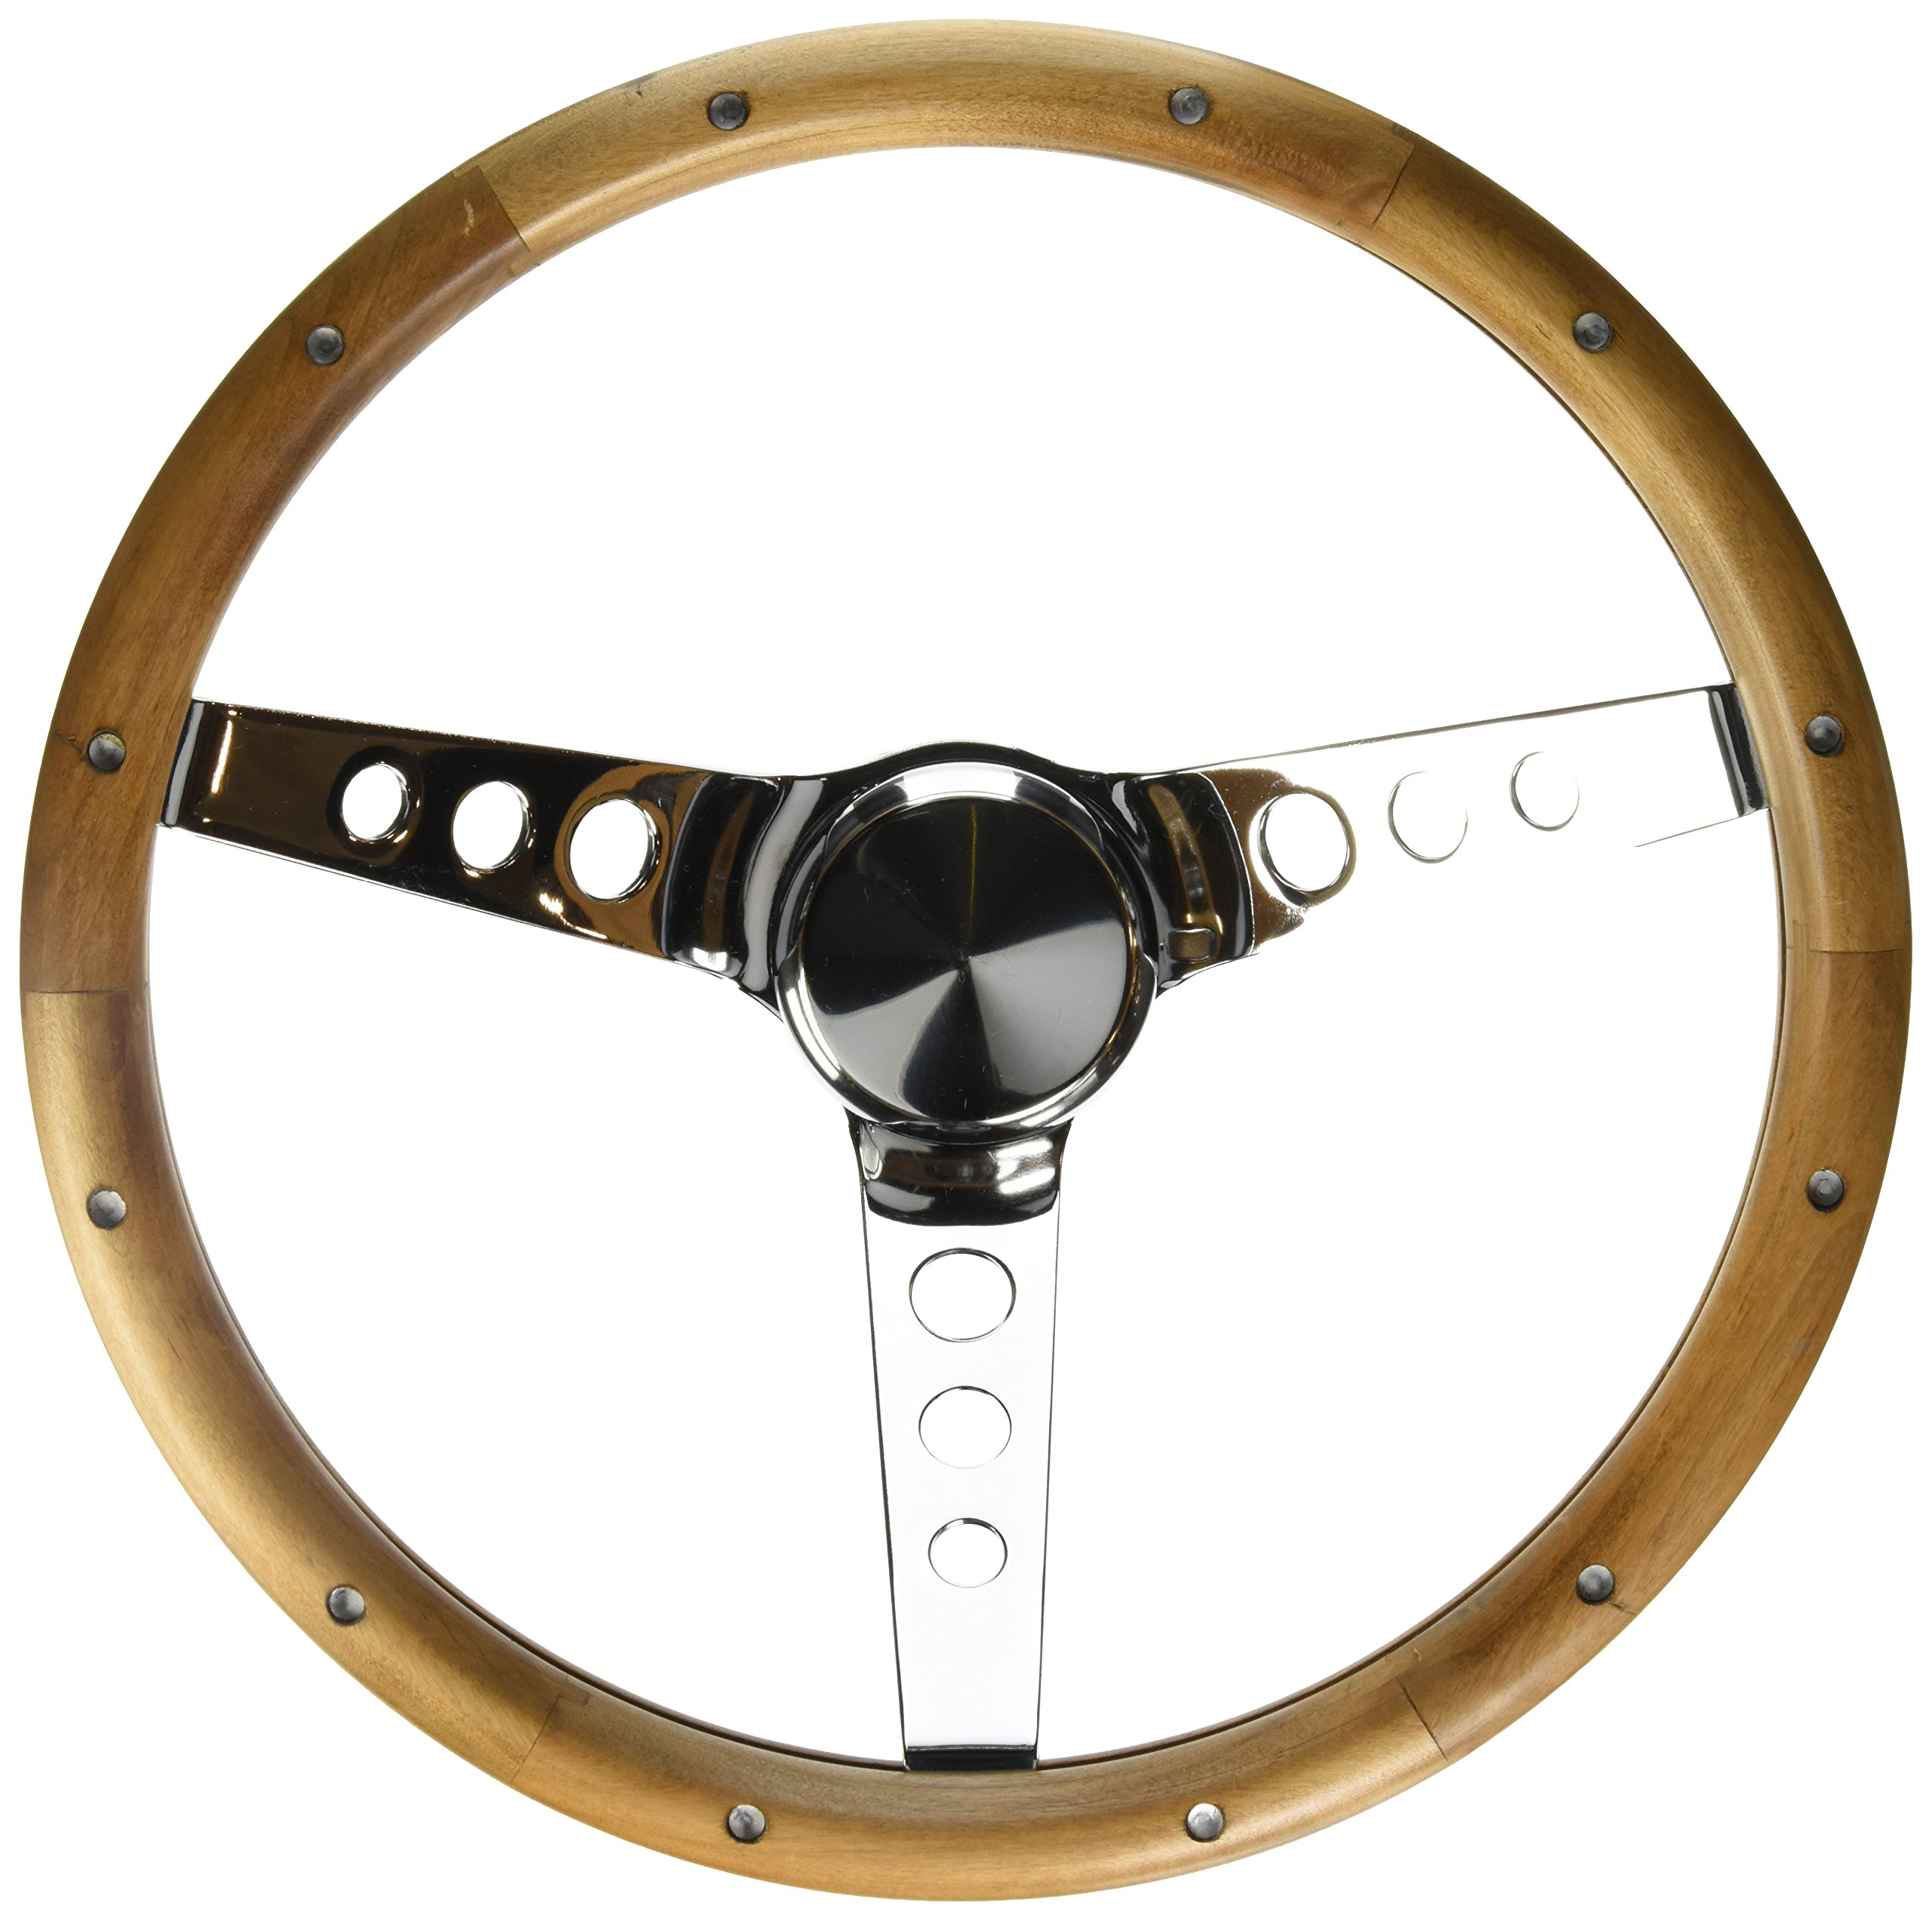 Grant Products 213 Classic Wood Wheel